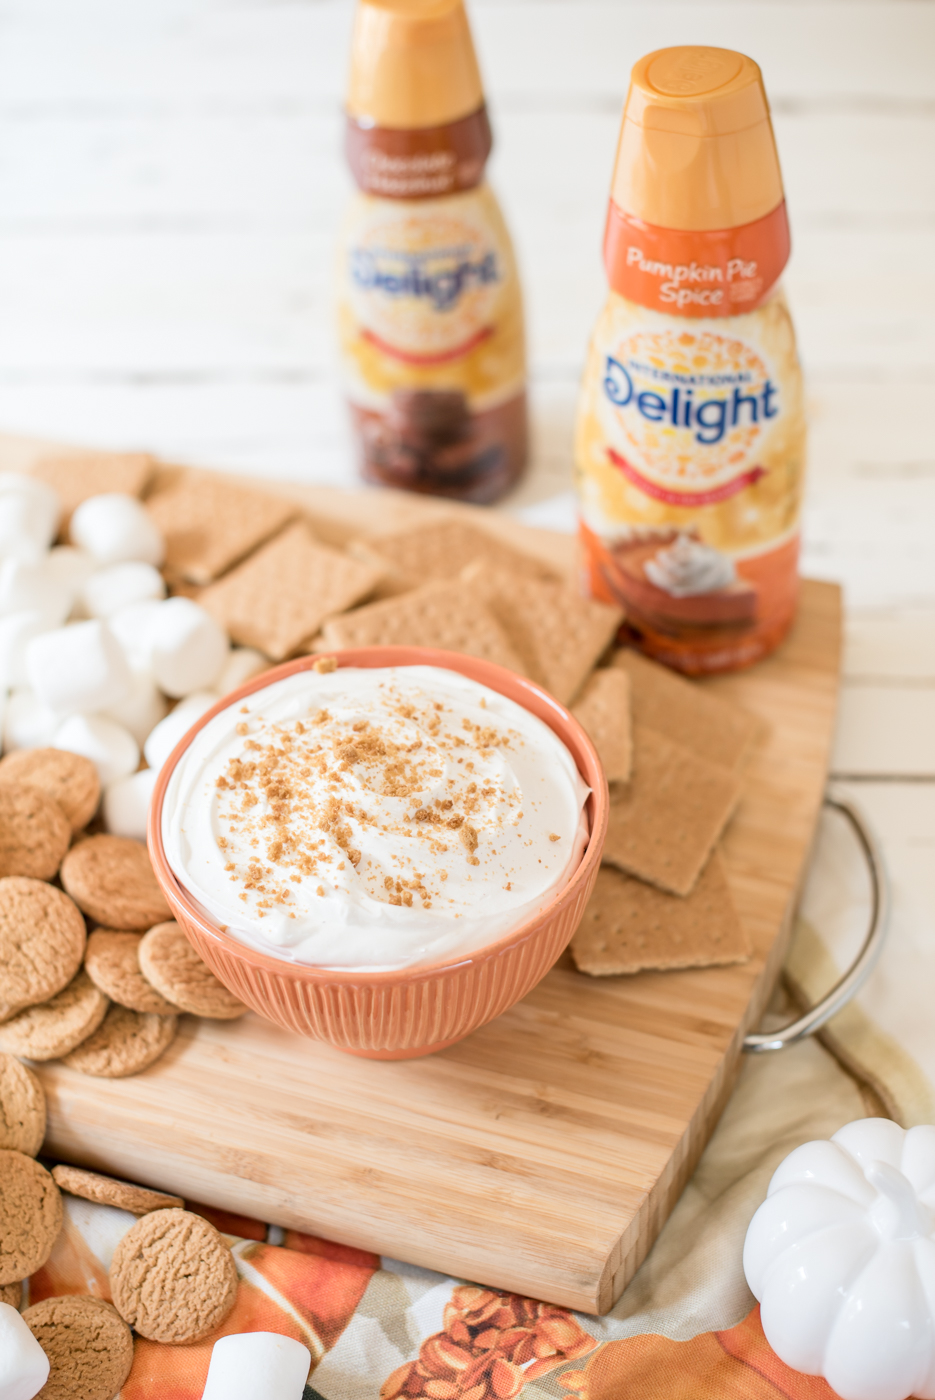 Pumpkin Pie Cheesecake Dip, International Delight Pumpkin Pie Creamer | Pumpkin Pie Cheesecake Dip recipe featured by top US food blogger, Miss Molly Moon